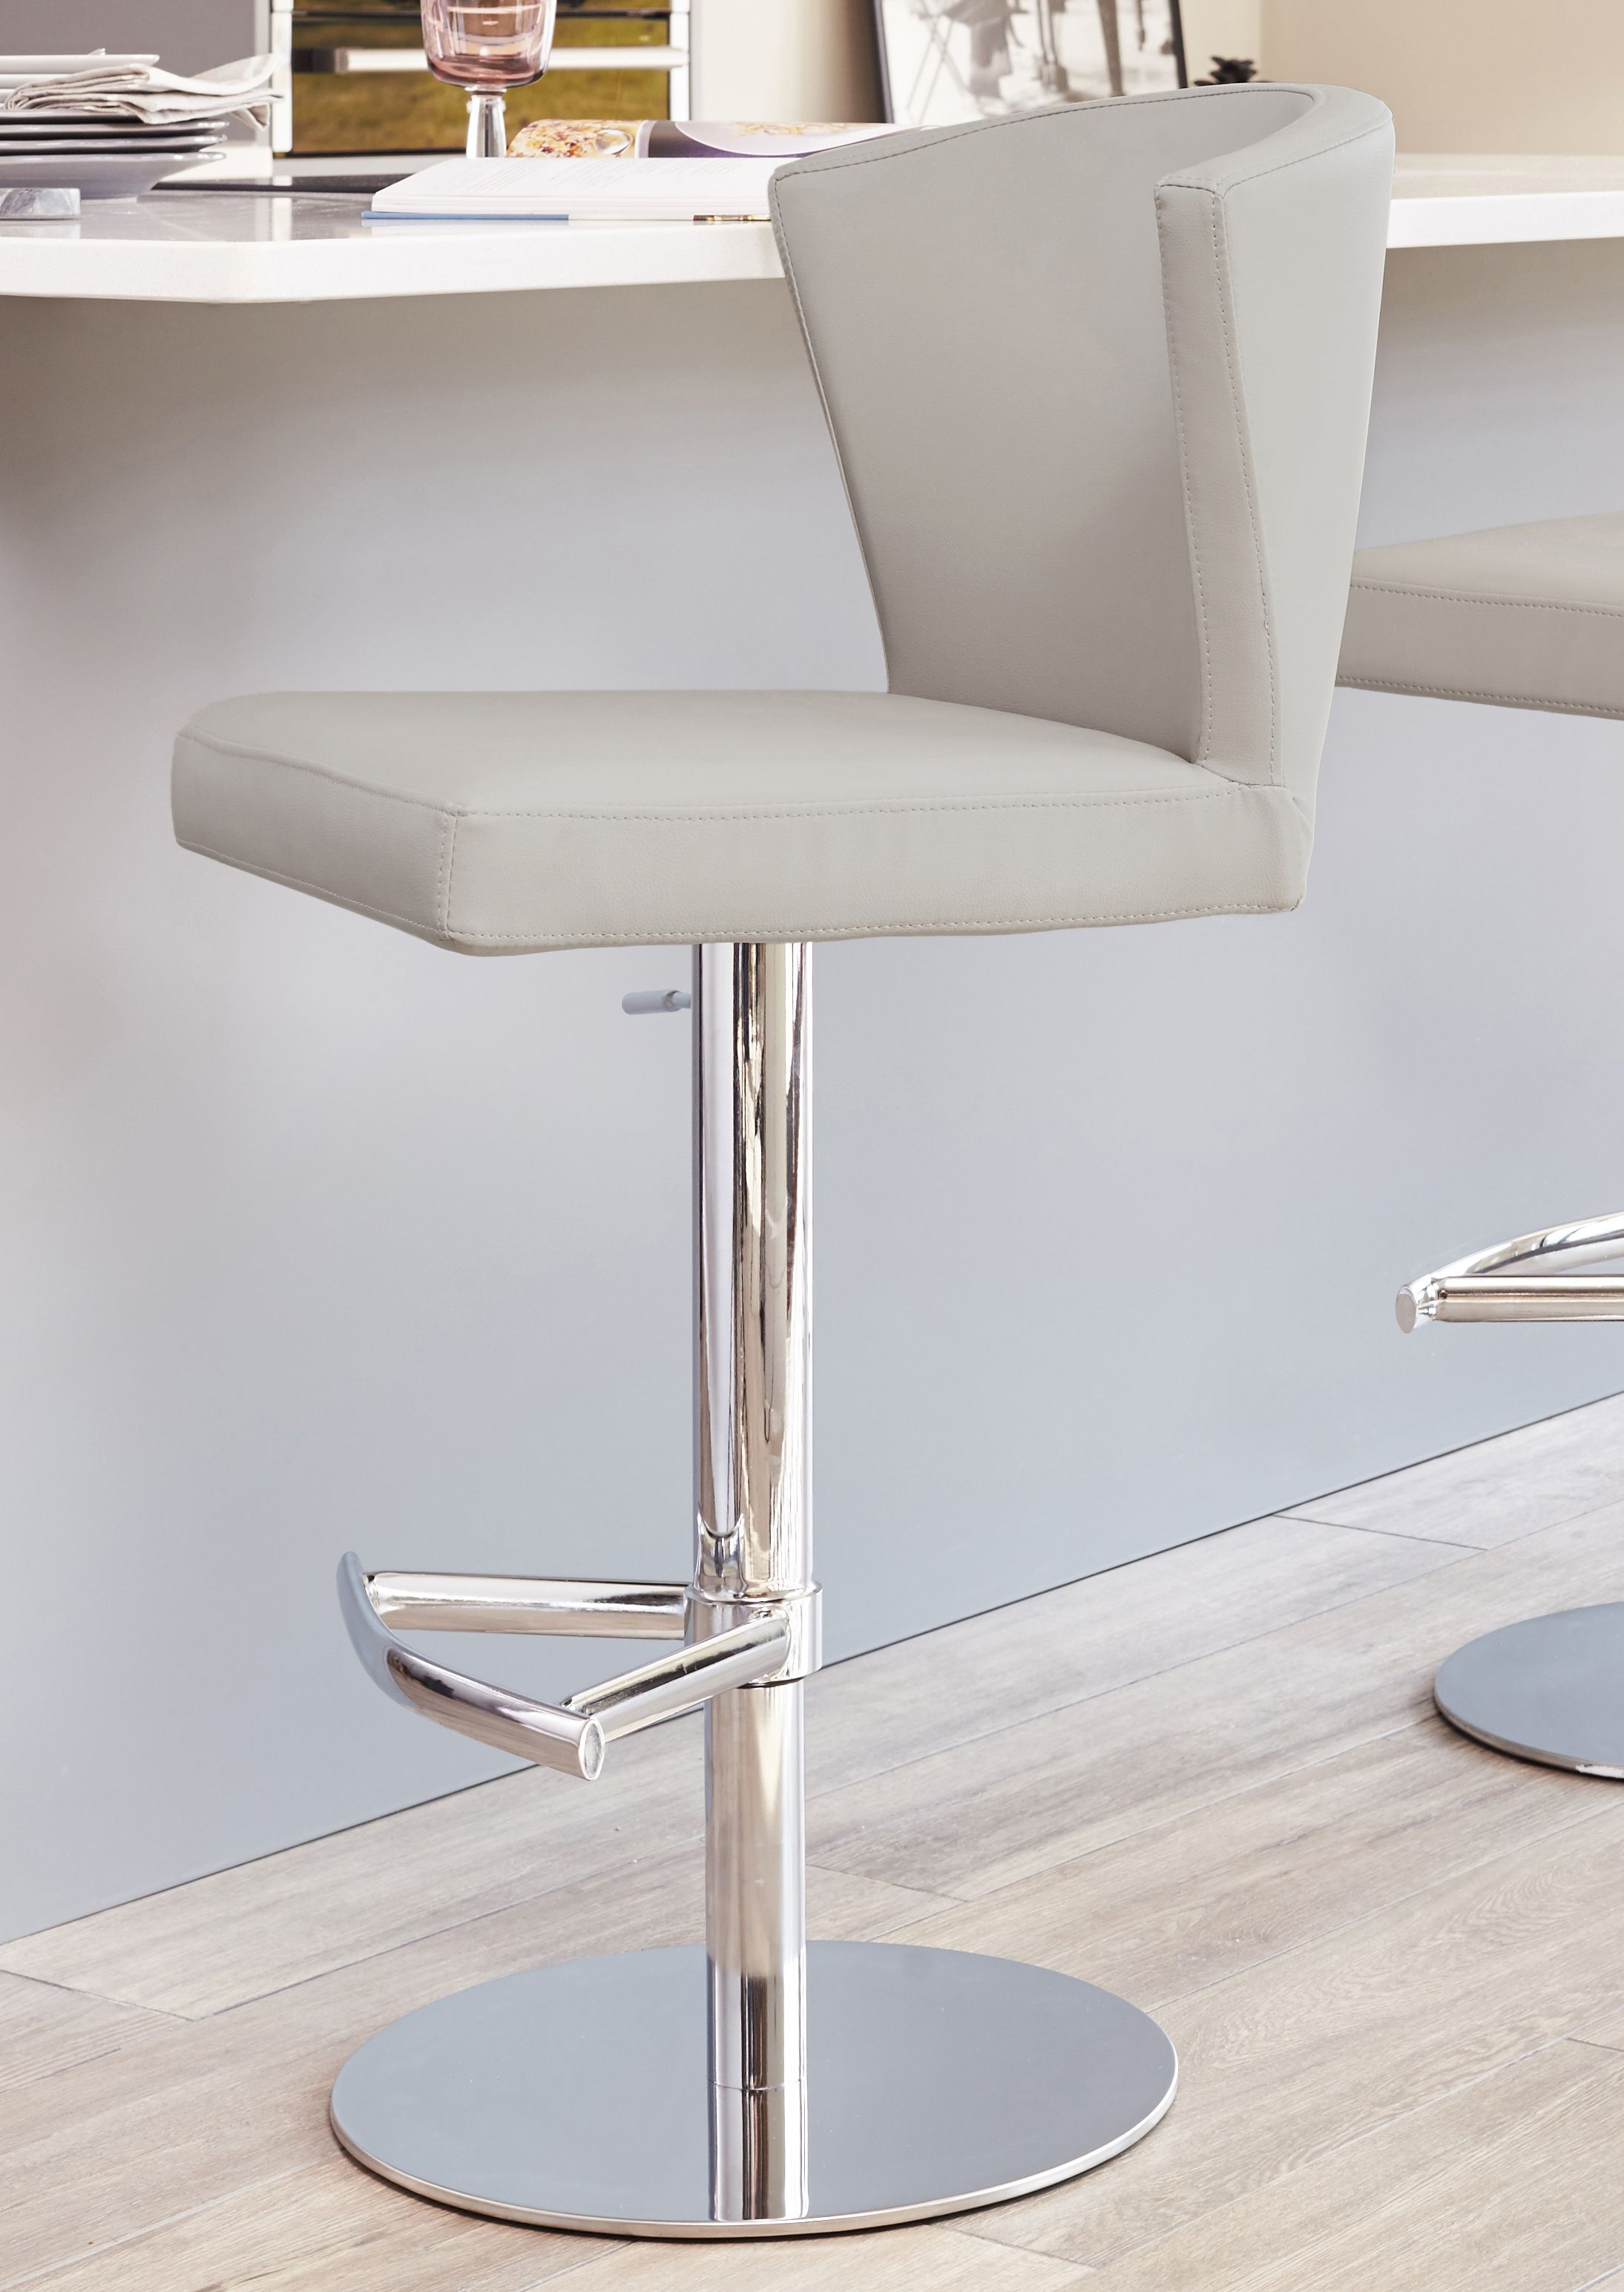 Astonishing Curva Gas Lift Bar Stool Restaurants In 2019 Bars For Squirreltailoven Fun Painted Chair Ideas Images Squirreltailovenorg